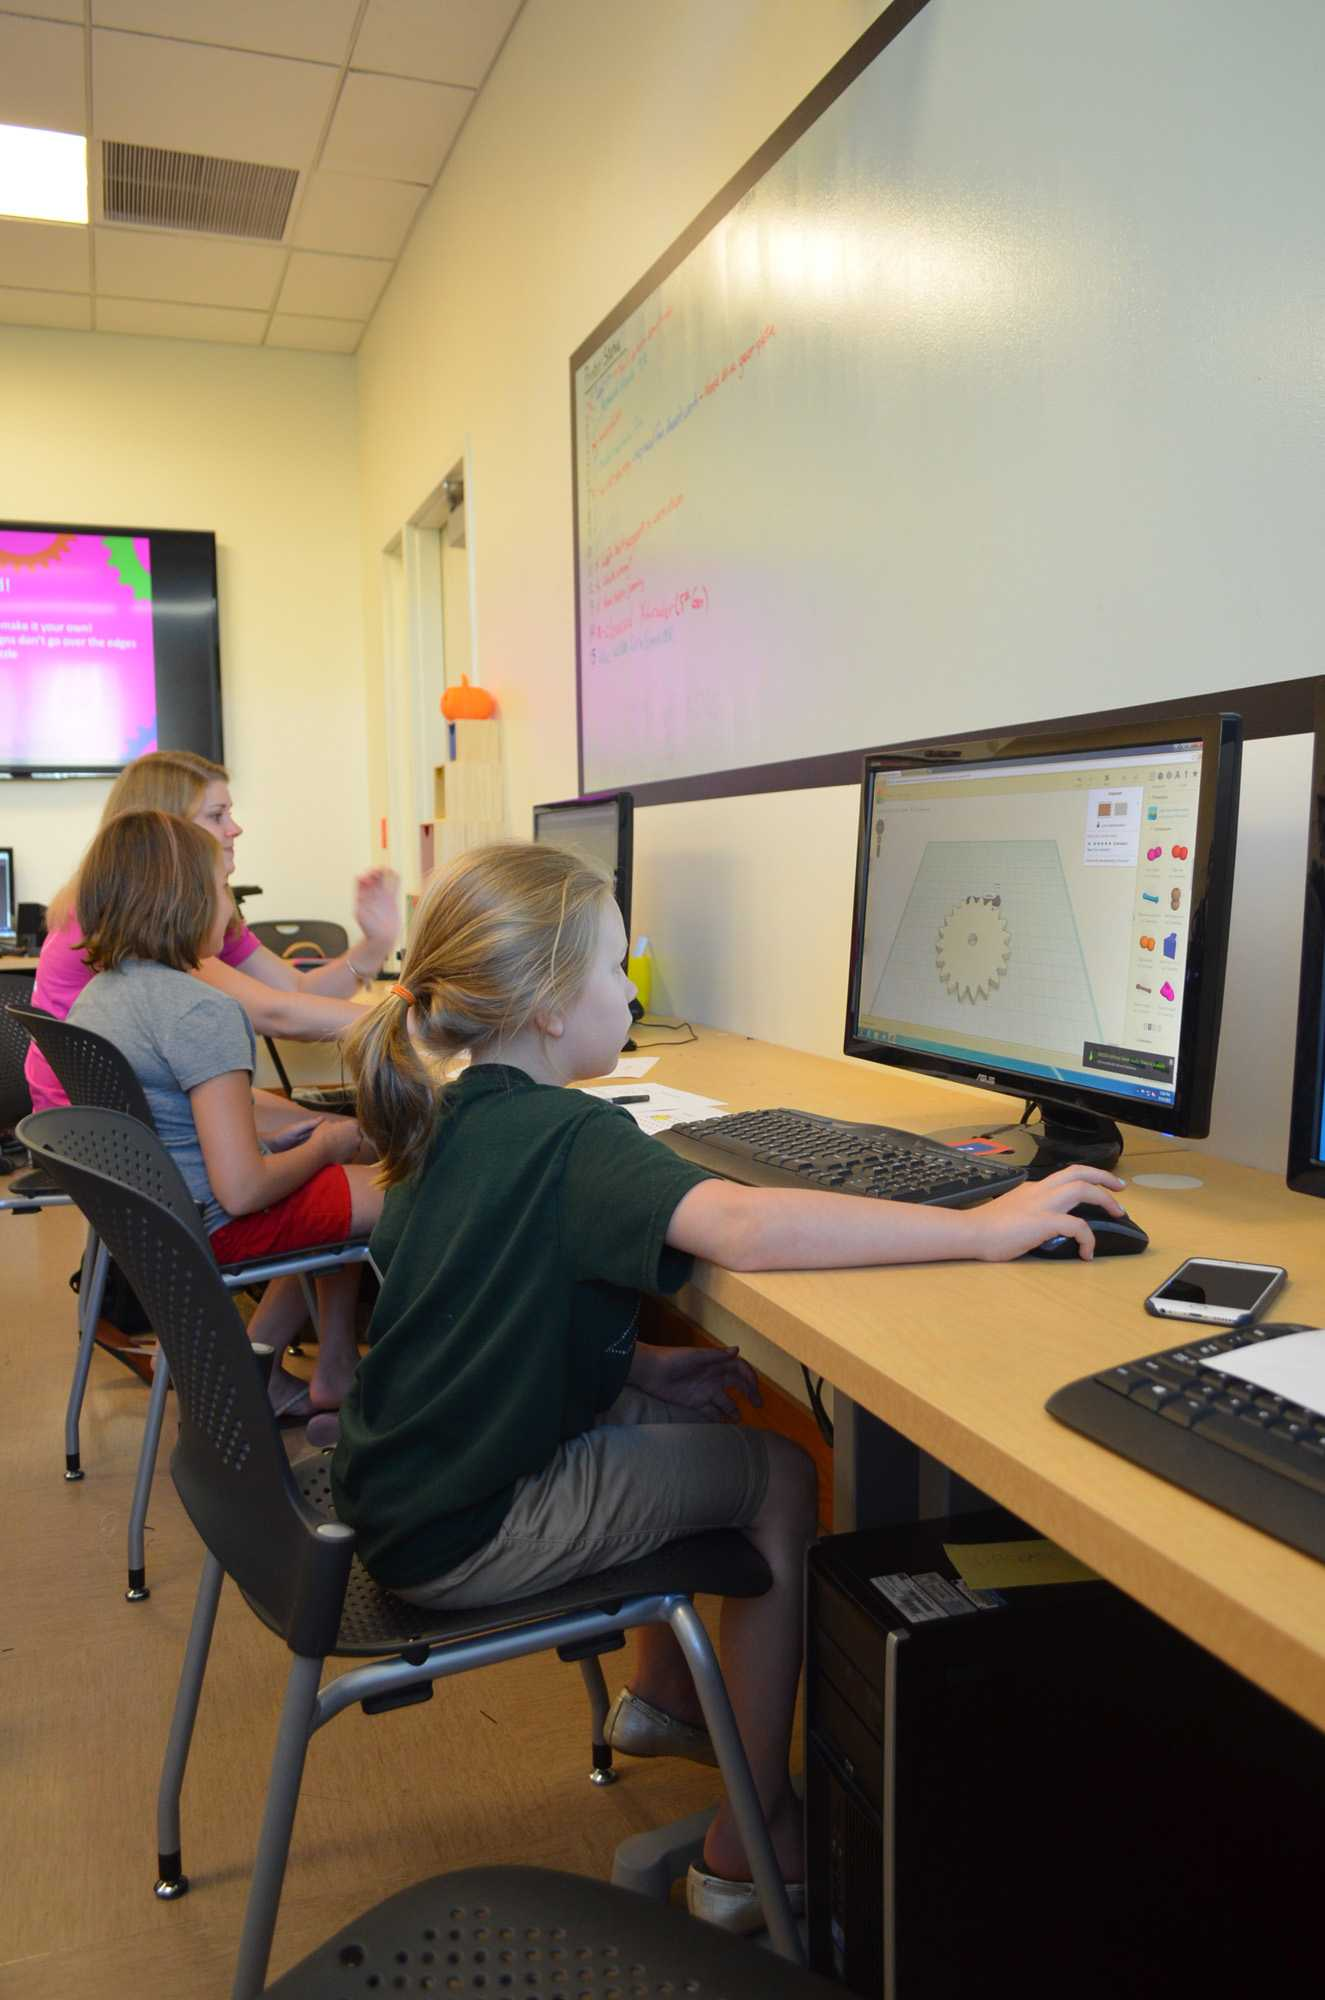 Addy Timmins works on the computer at BIF on September 14, 2015 as part of the MakerGirl program.